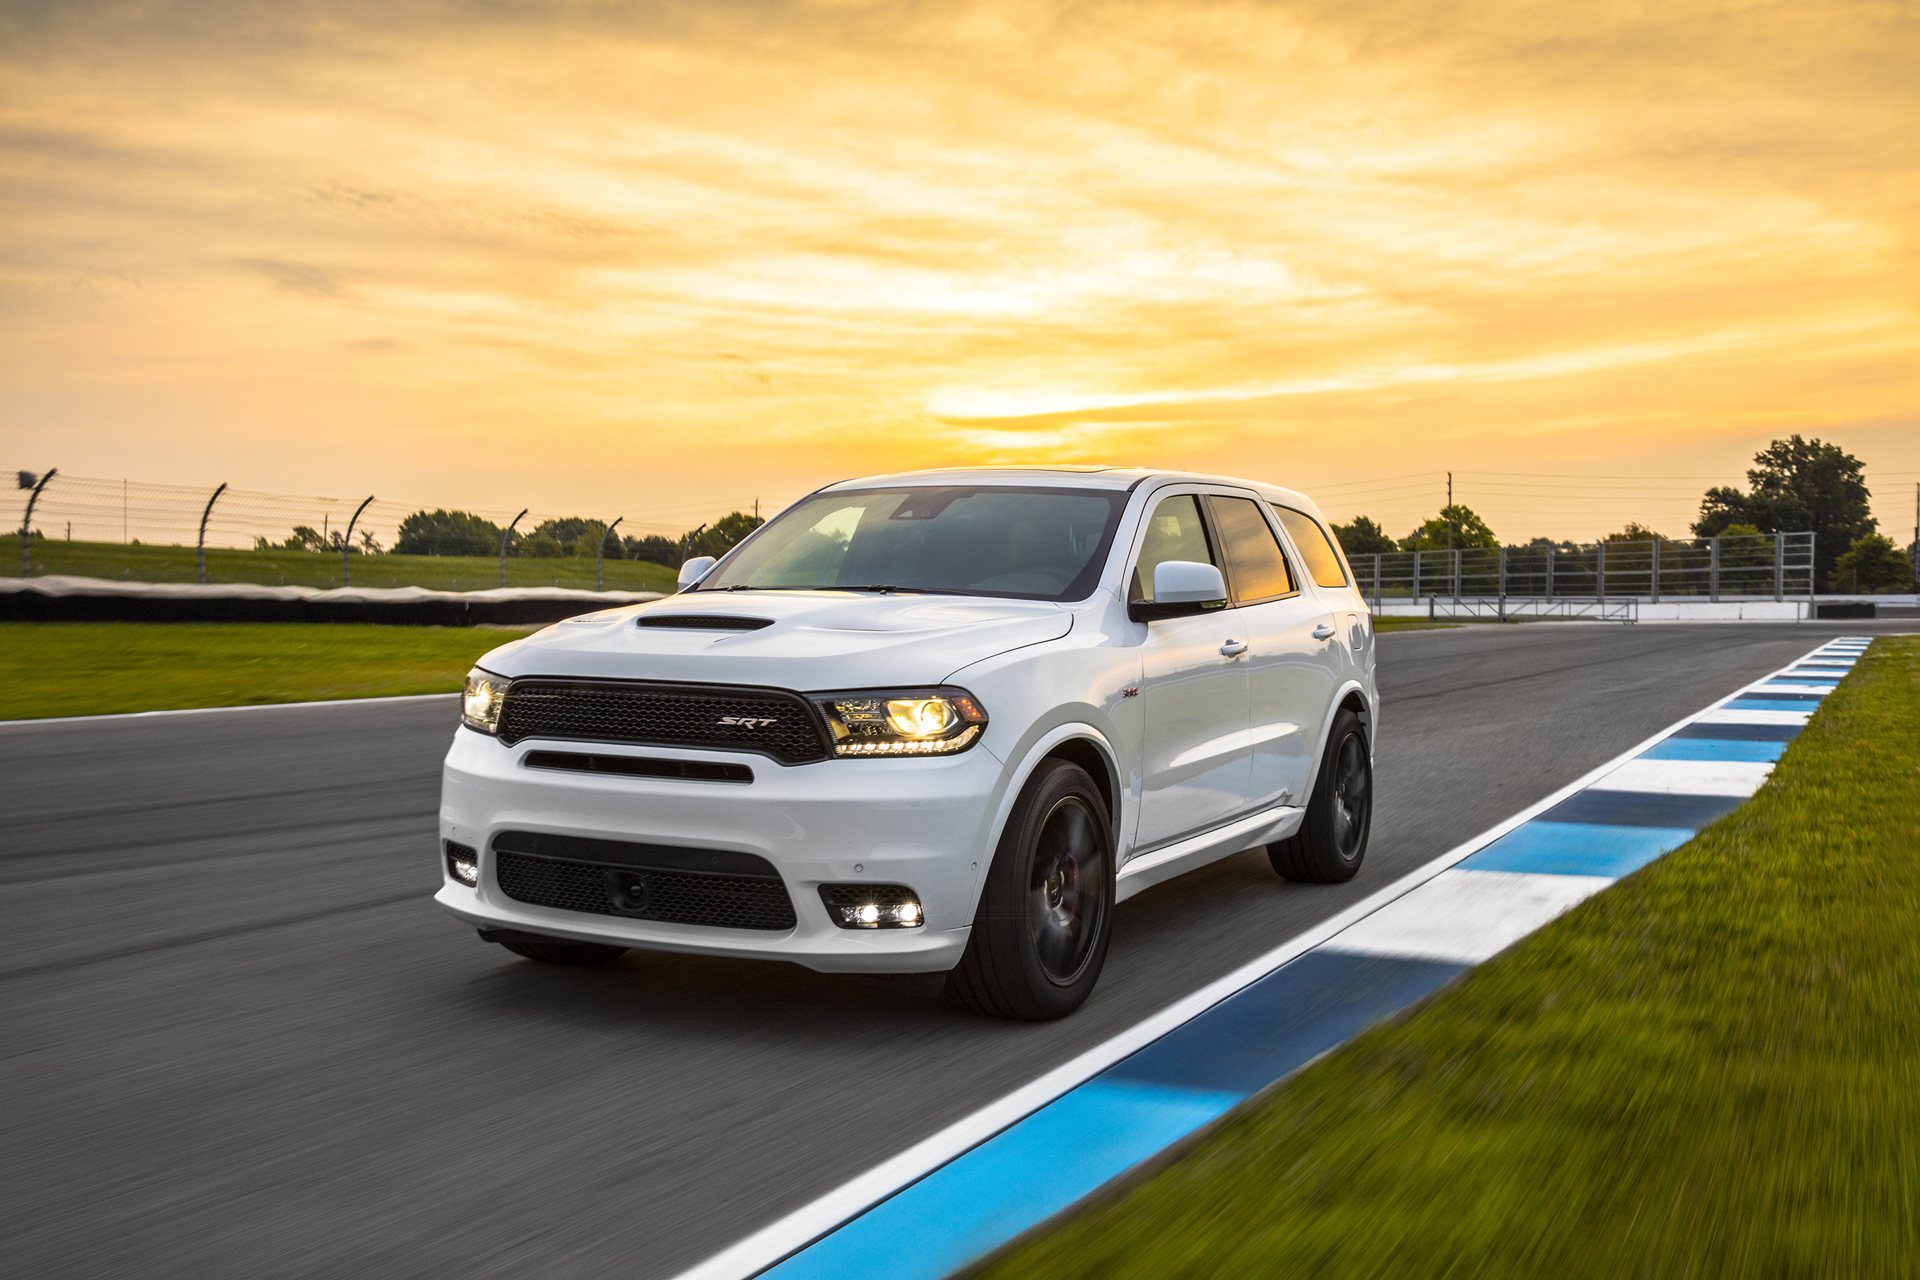 2018 Dodge Durango SRT first drive review: Challenger's attitude (Page 3)